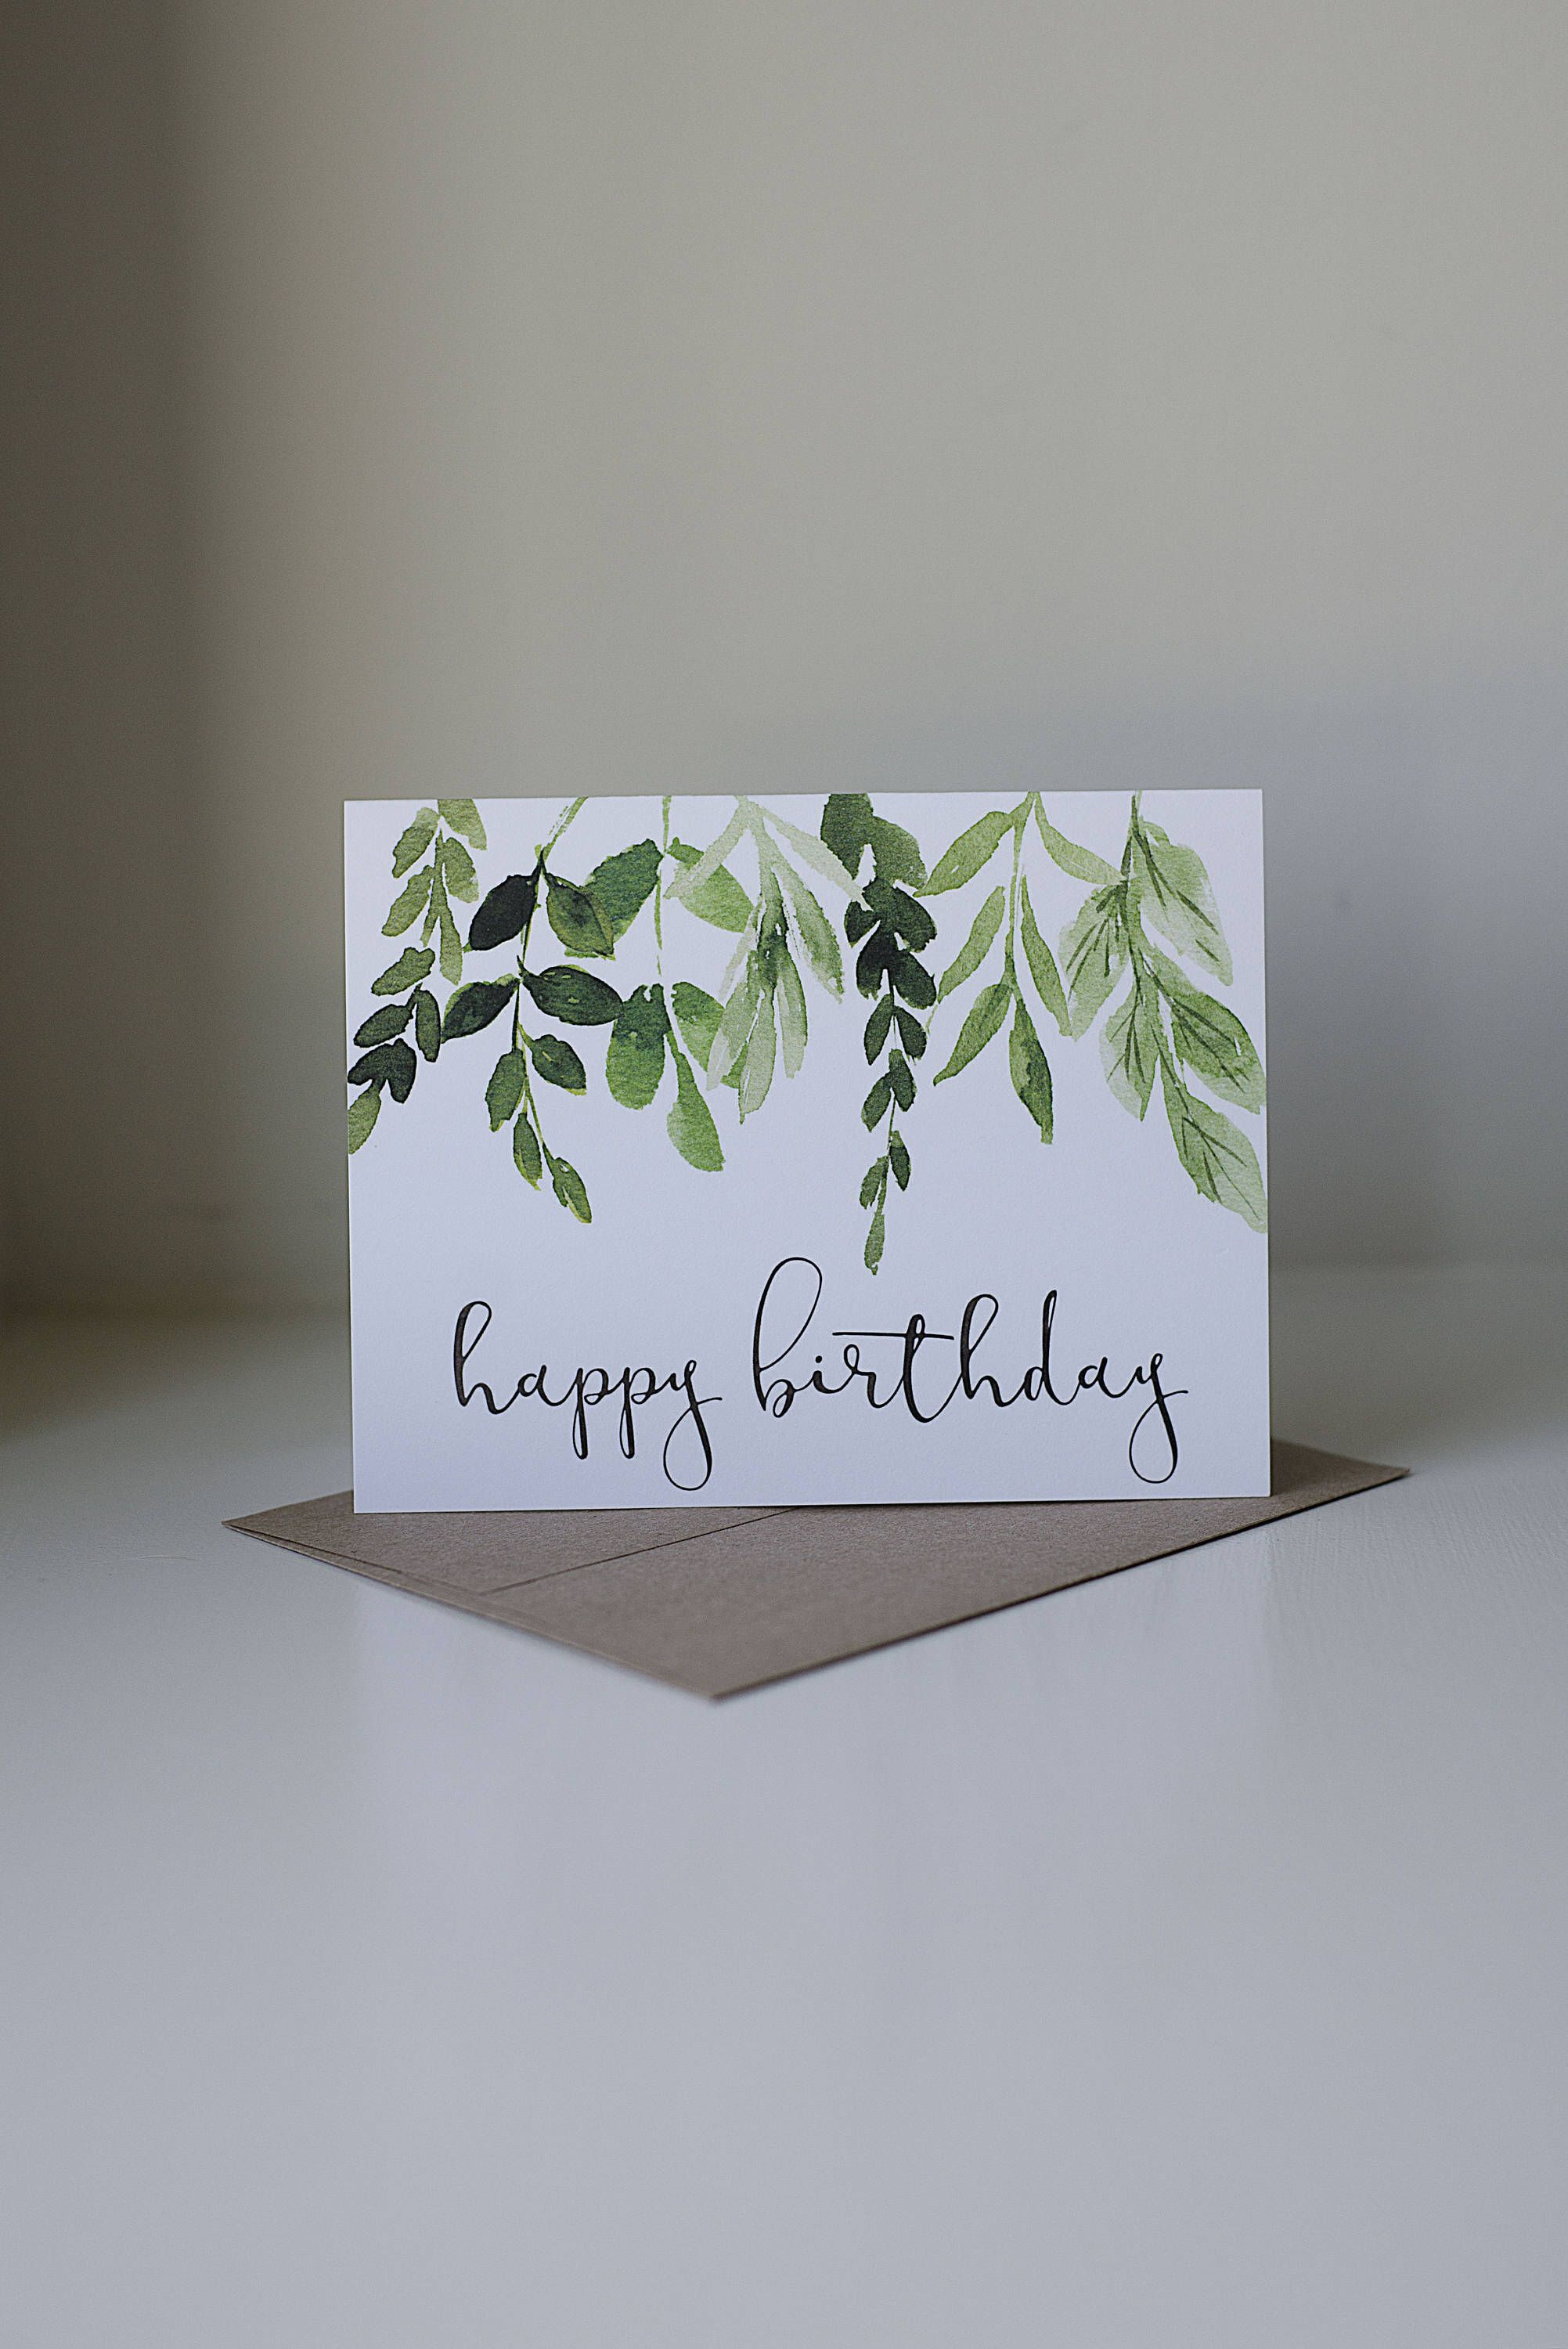 Happy Birthday Card Ivy Birthday Card Watercolor Card Pretty